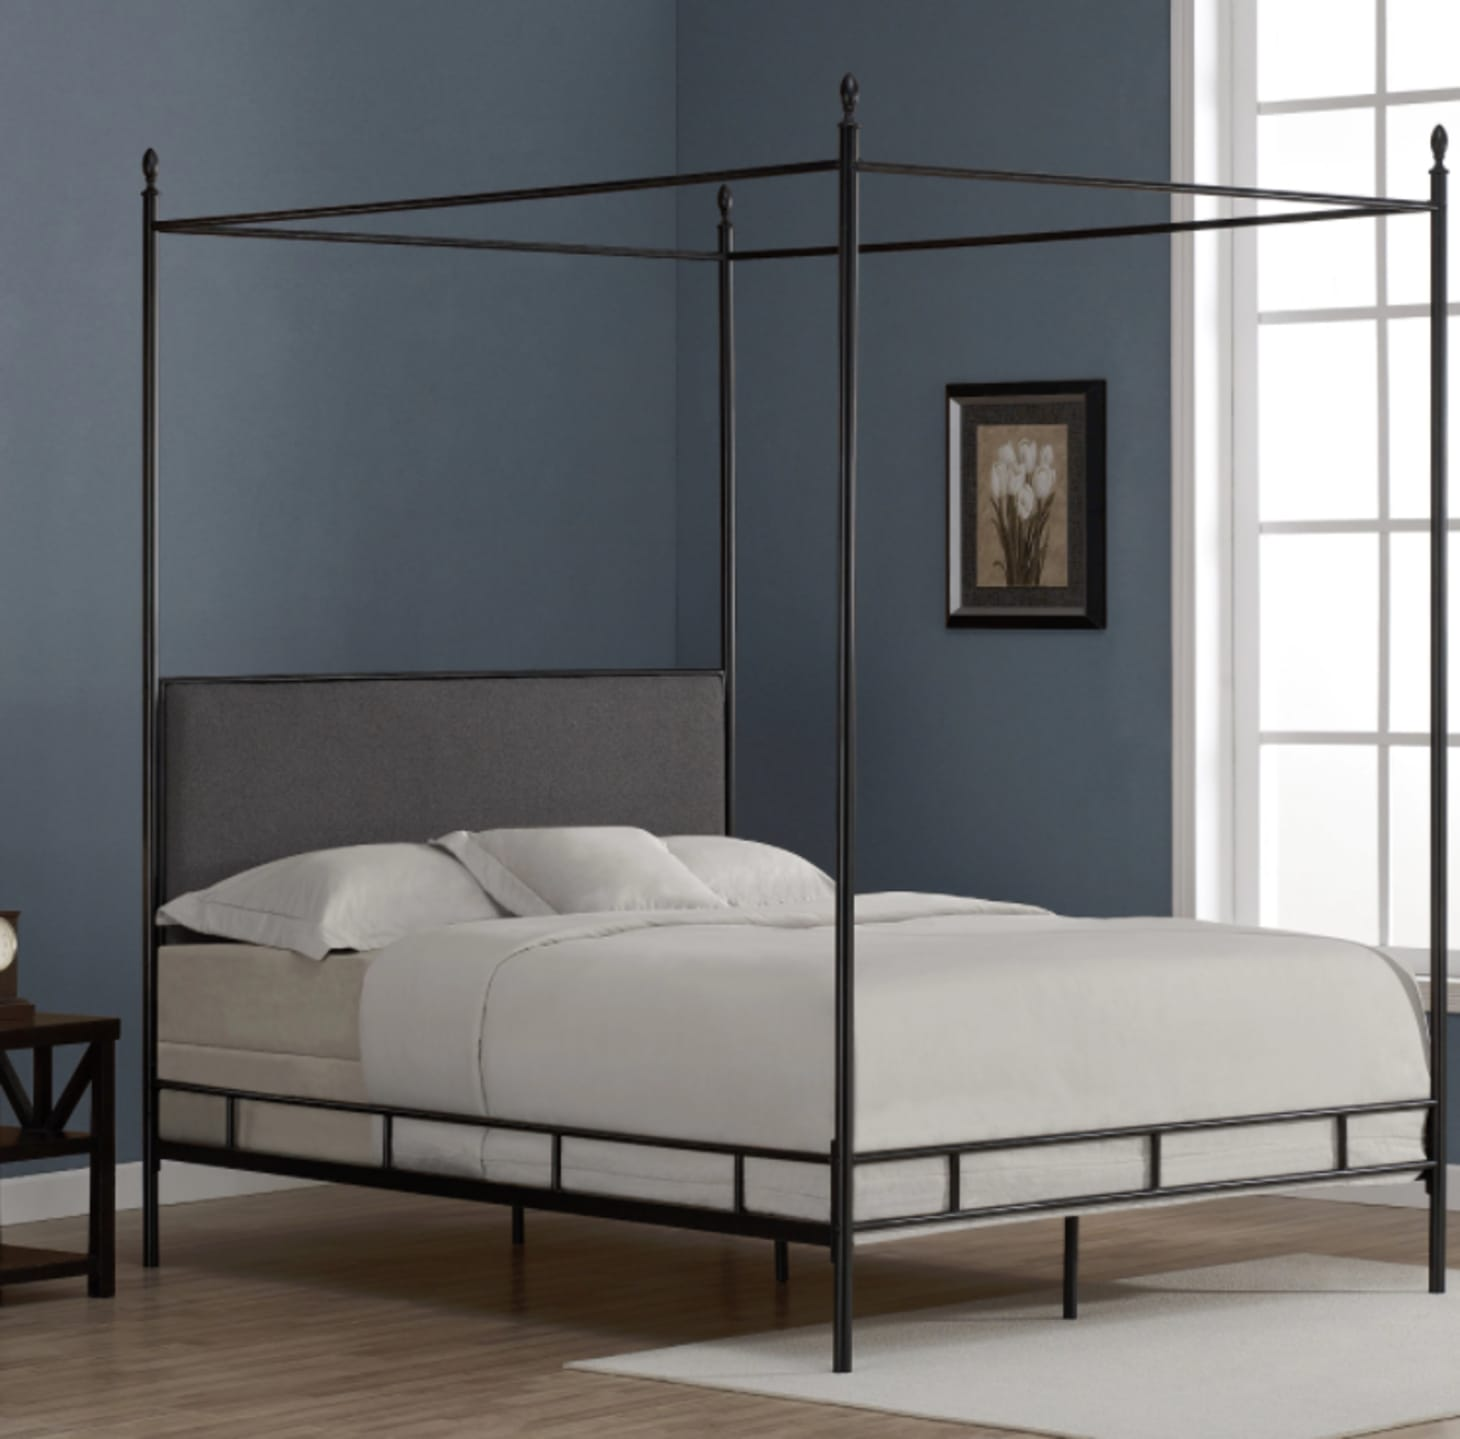 c2998df68c2e55 Lauren Grey Upholstered Queen-size Canopy Bed at Overstock